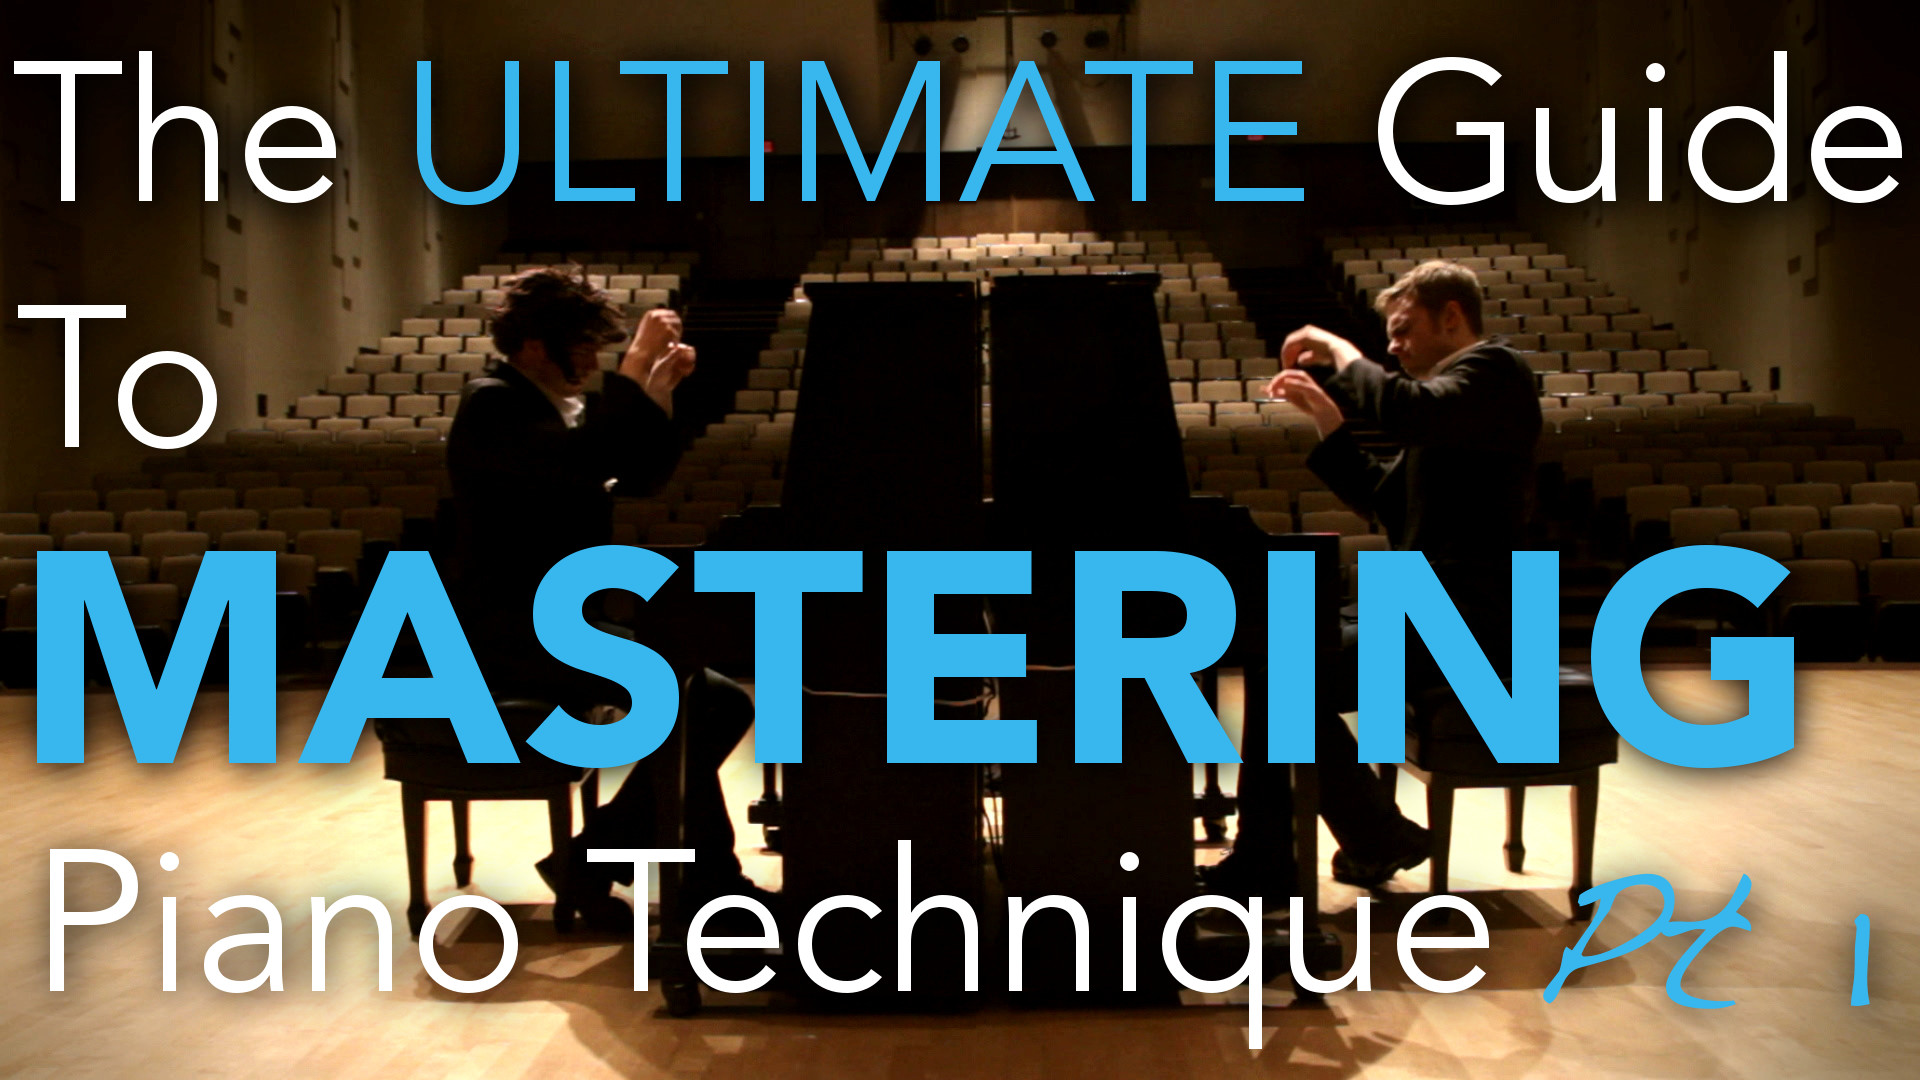 The ULTIMATE Guide to Mastering Piano Technique - Part 1